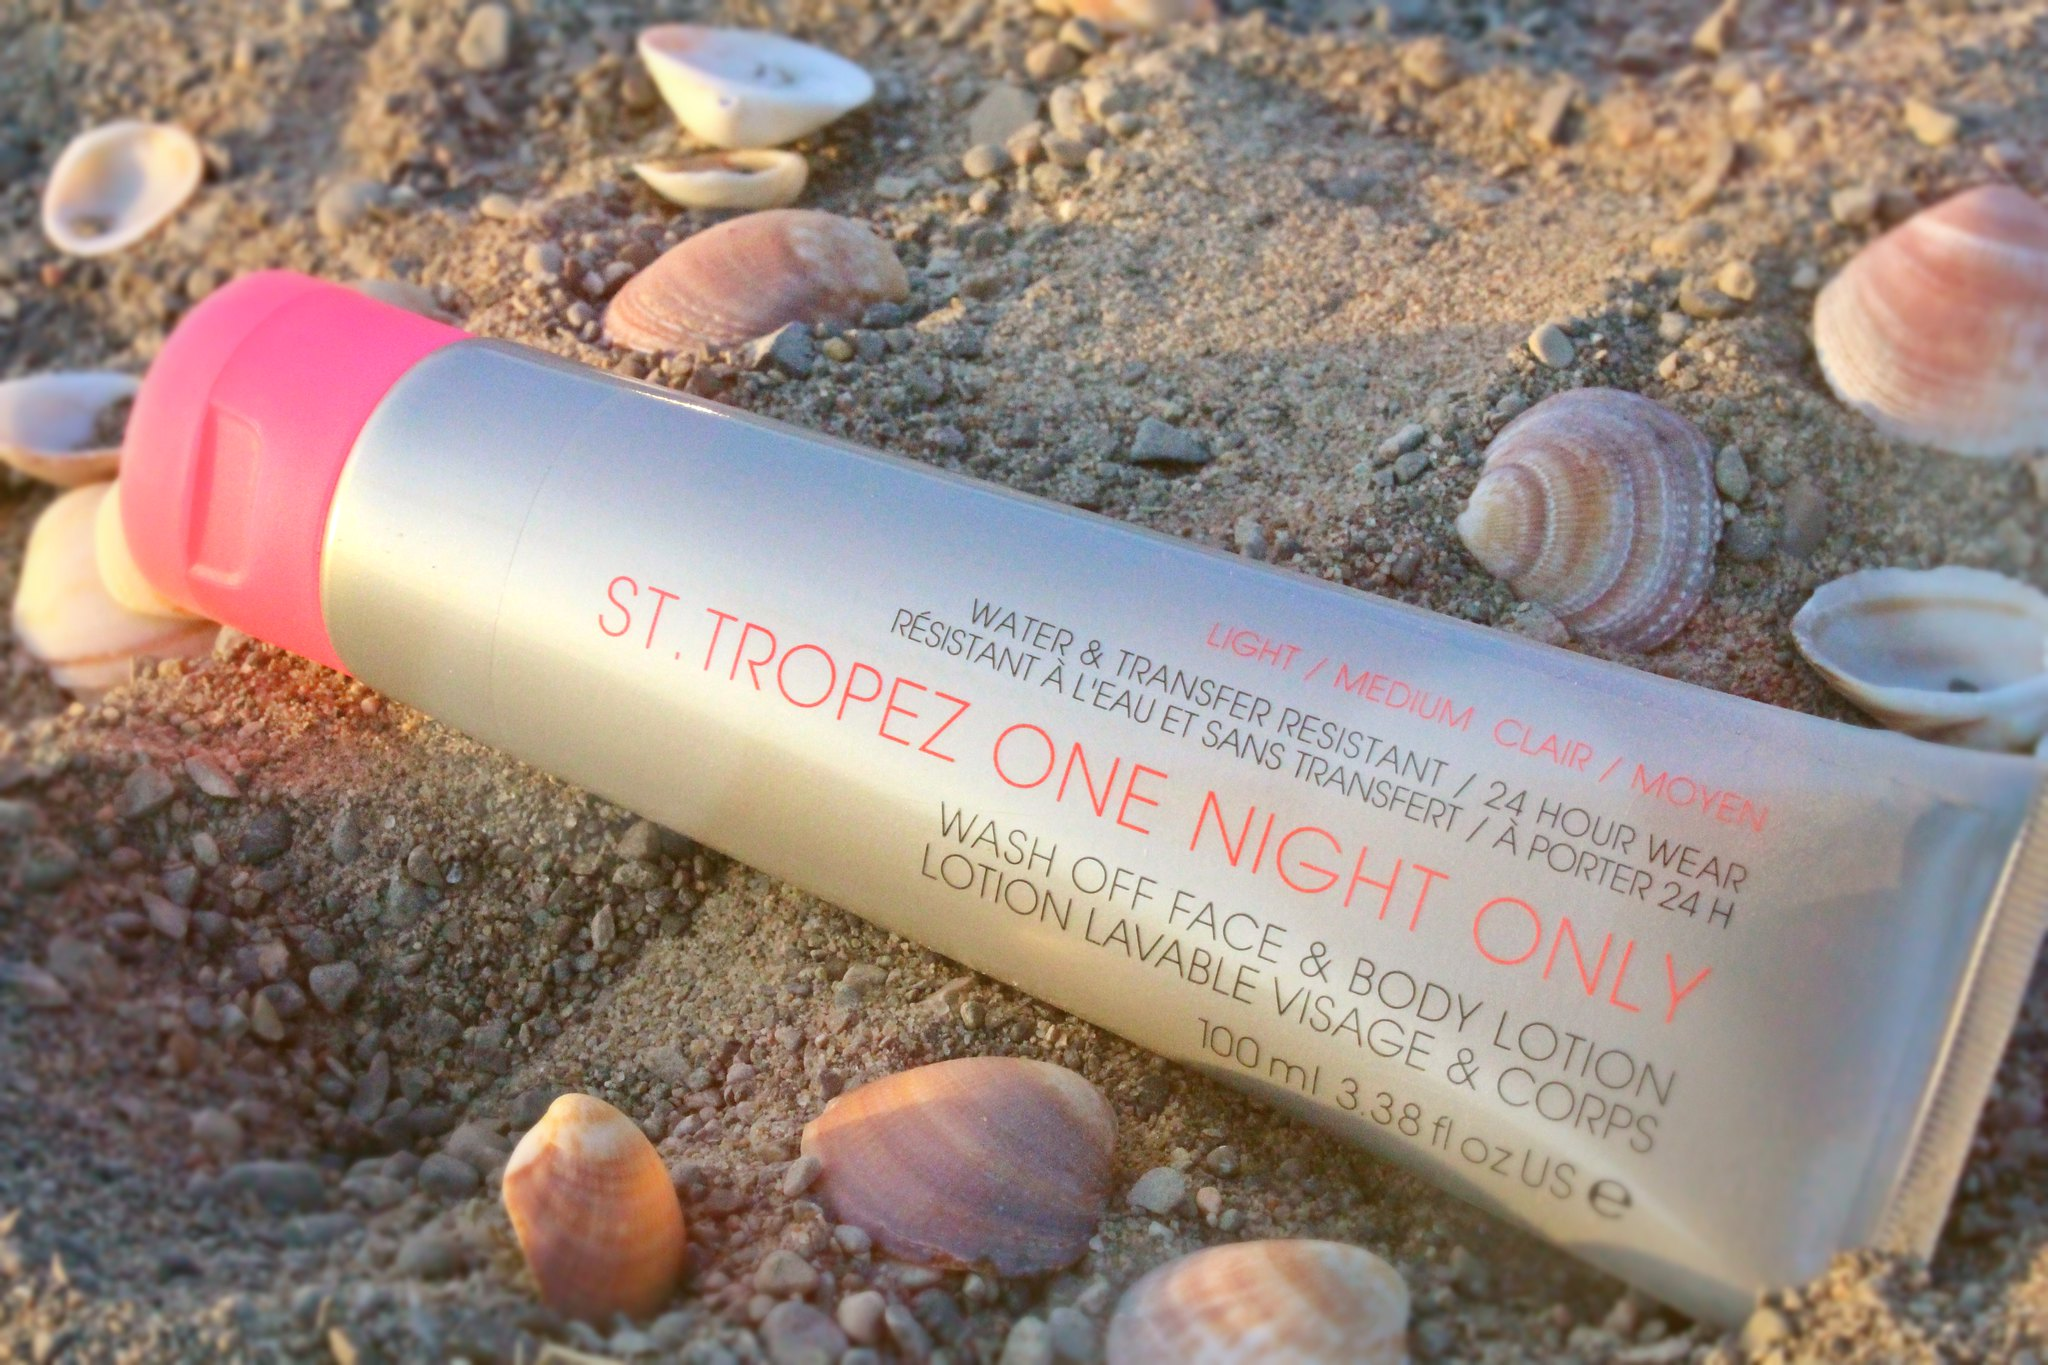 St. Tropez One Night Only Wash Off Face & Body Lotion (in Light/Medium)